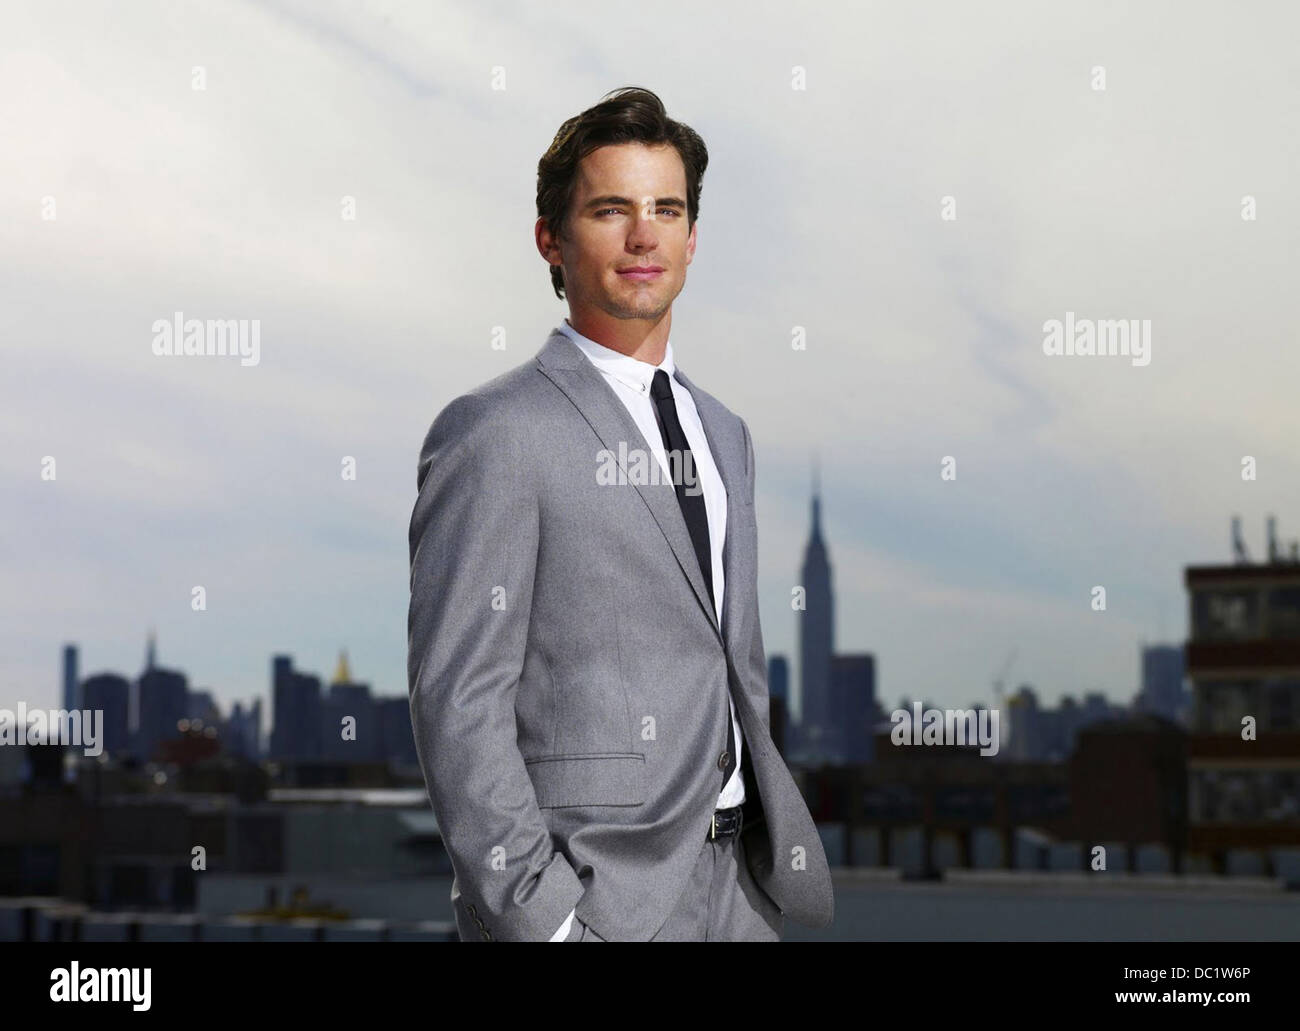 WHITE COLLAR (2009) (TV) MATT BOMER 001 MOVIESTORE COLLECTION LTD. Stockbild